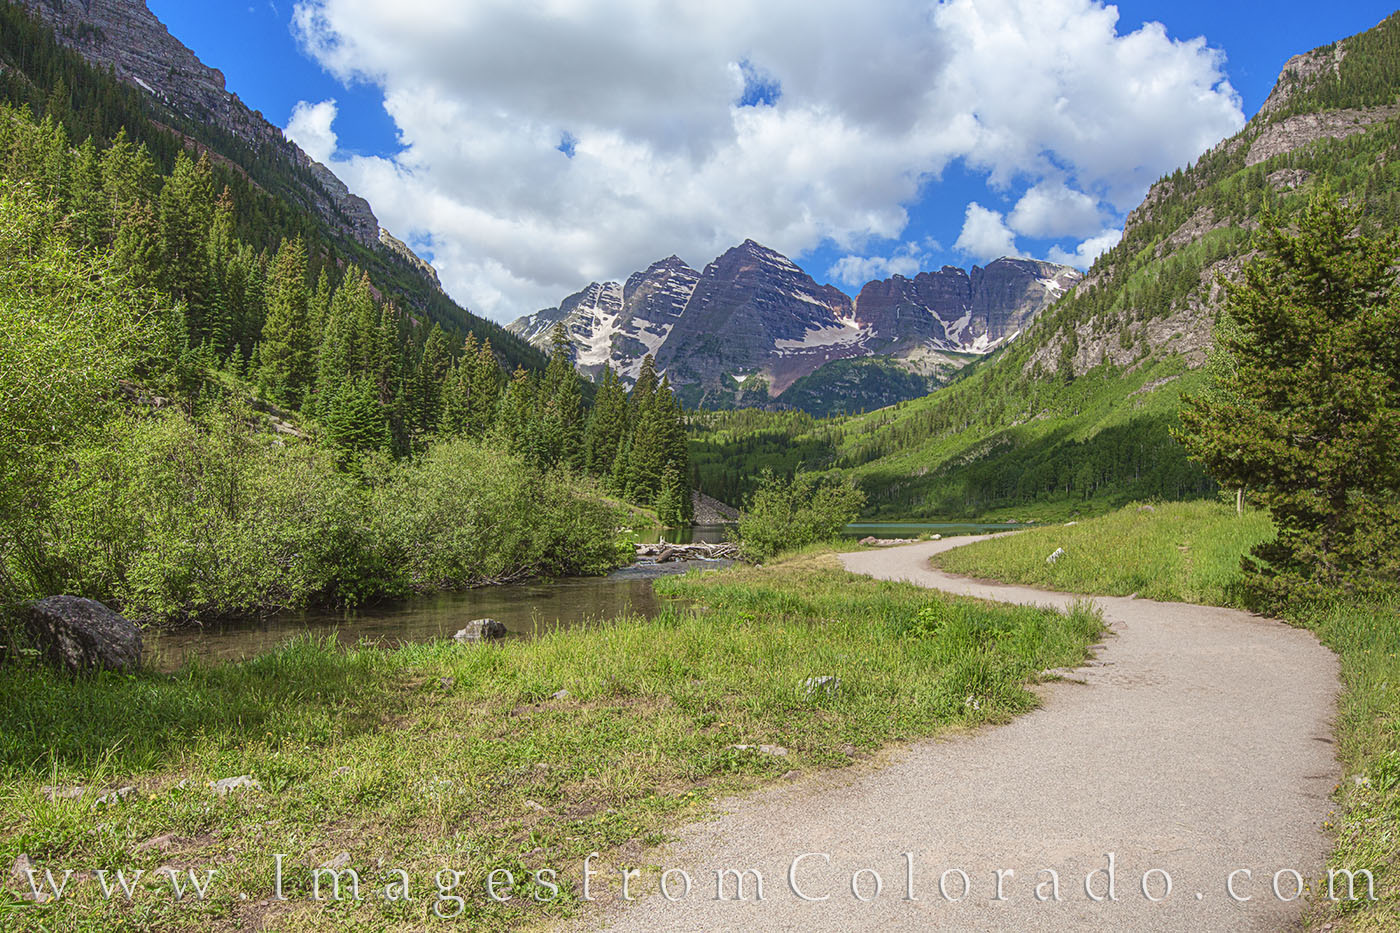 The drive from Aspen up to Maroon Lake in the Elk Range is stunning, but the final portion - the walkway to the lake - brings...